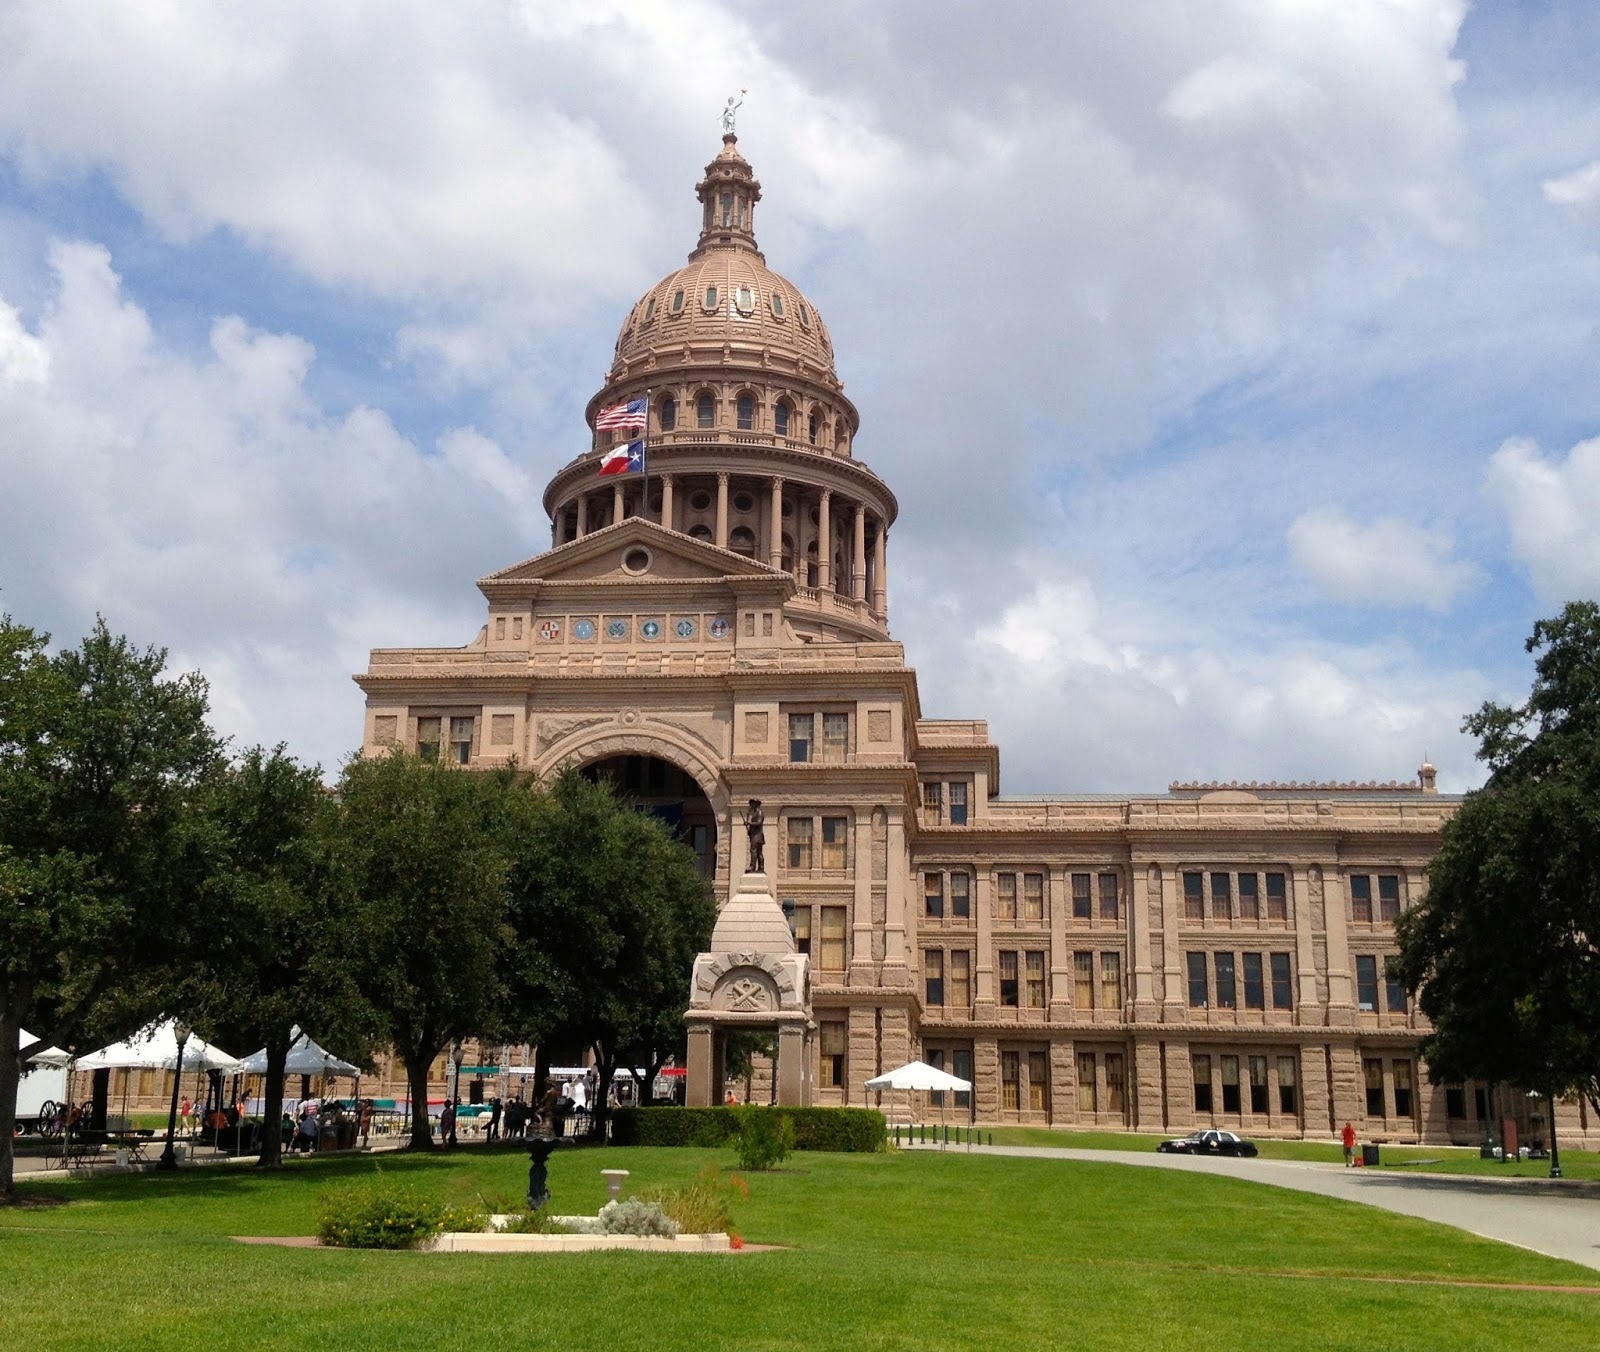 Capitol in austin photo